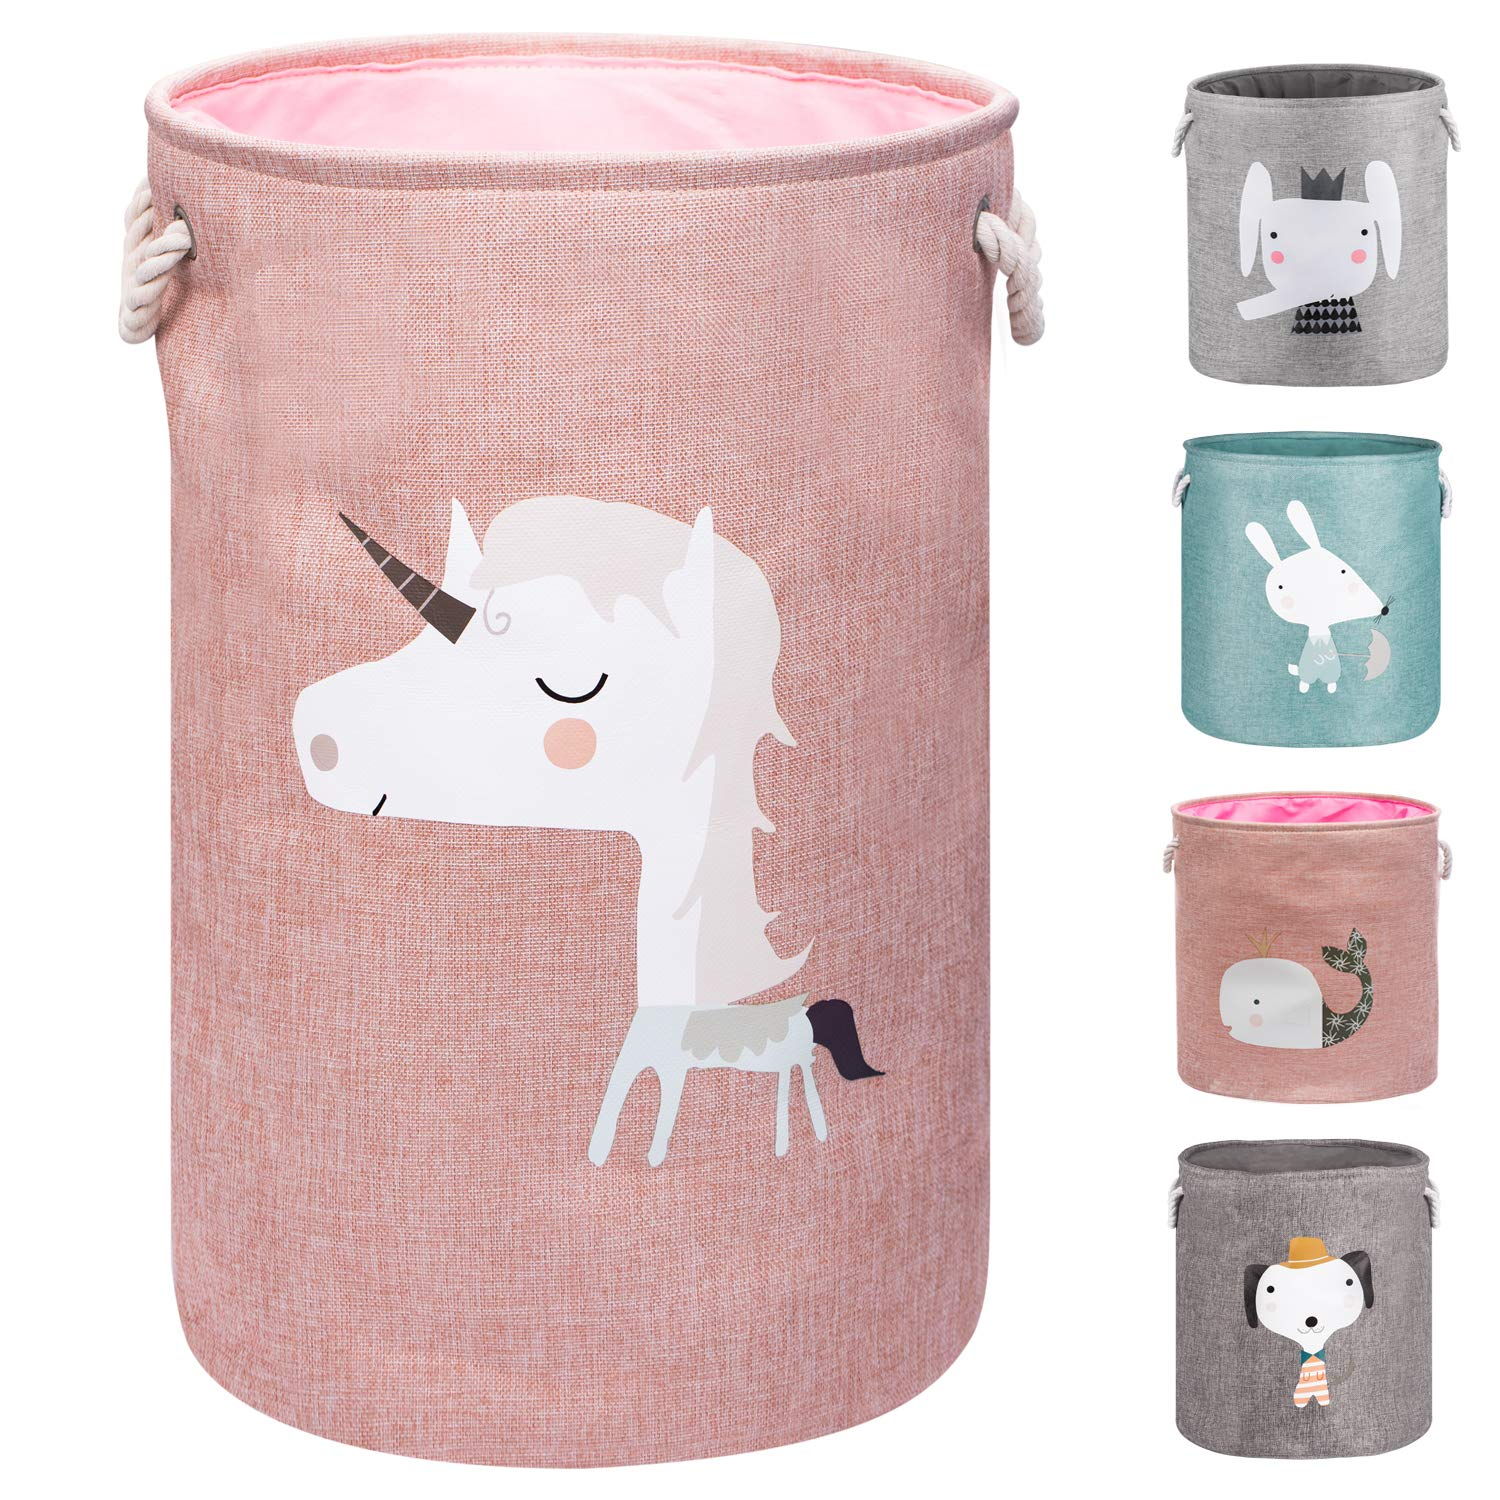 """AXHOP 22"""" Upgrade Large Collapsible Laundry Basket with Lid, Toy Storage Baskets Bin for Kids, Dog, Toys, Blanket, Clothes, Cute Animal Laundry Hamper"""